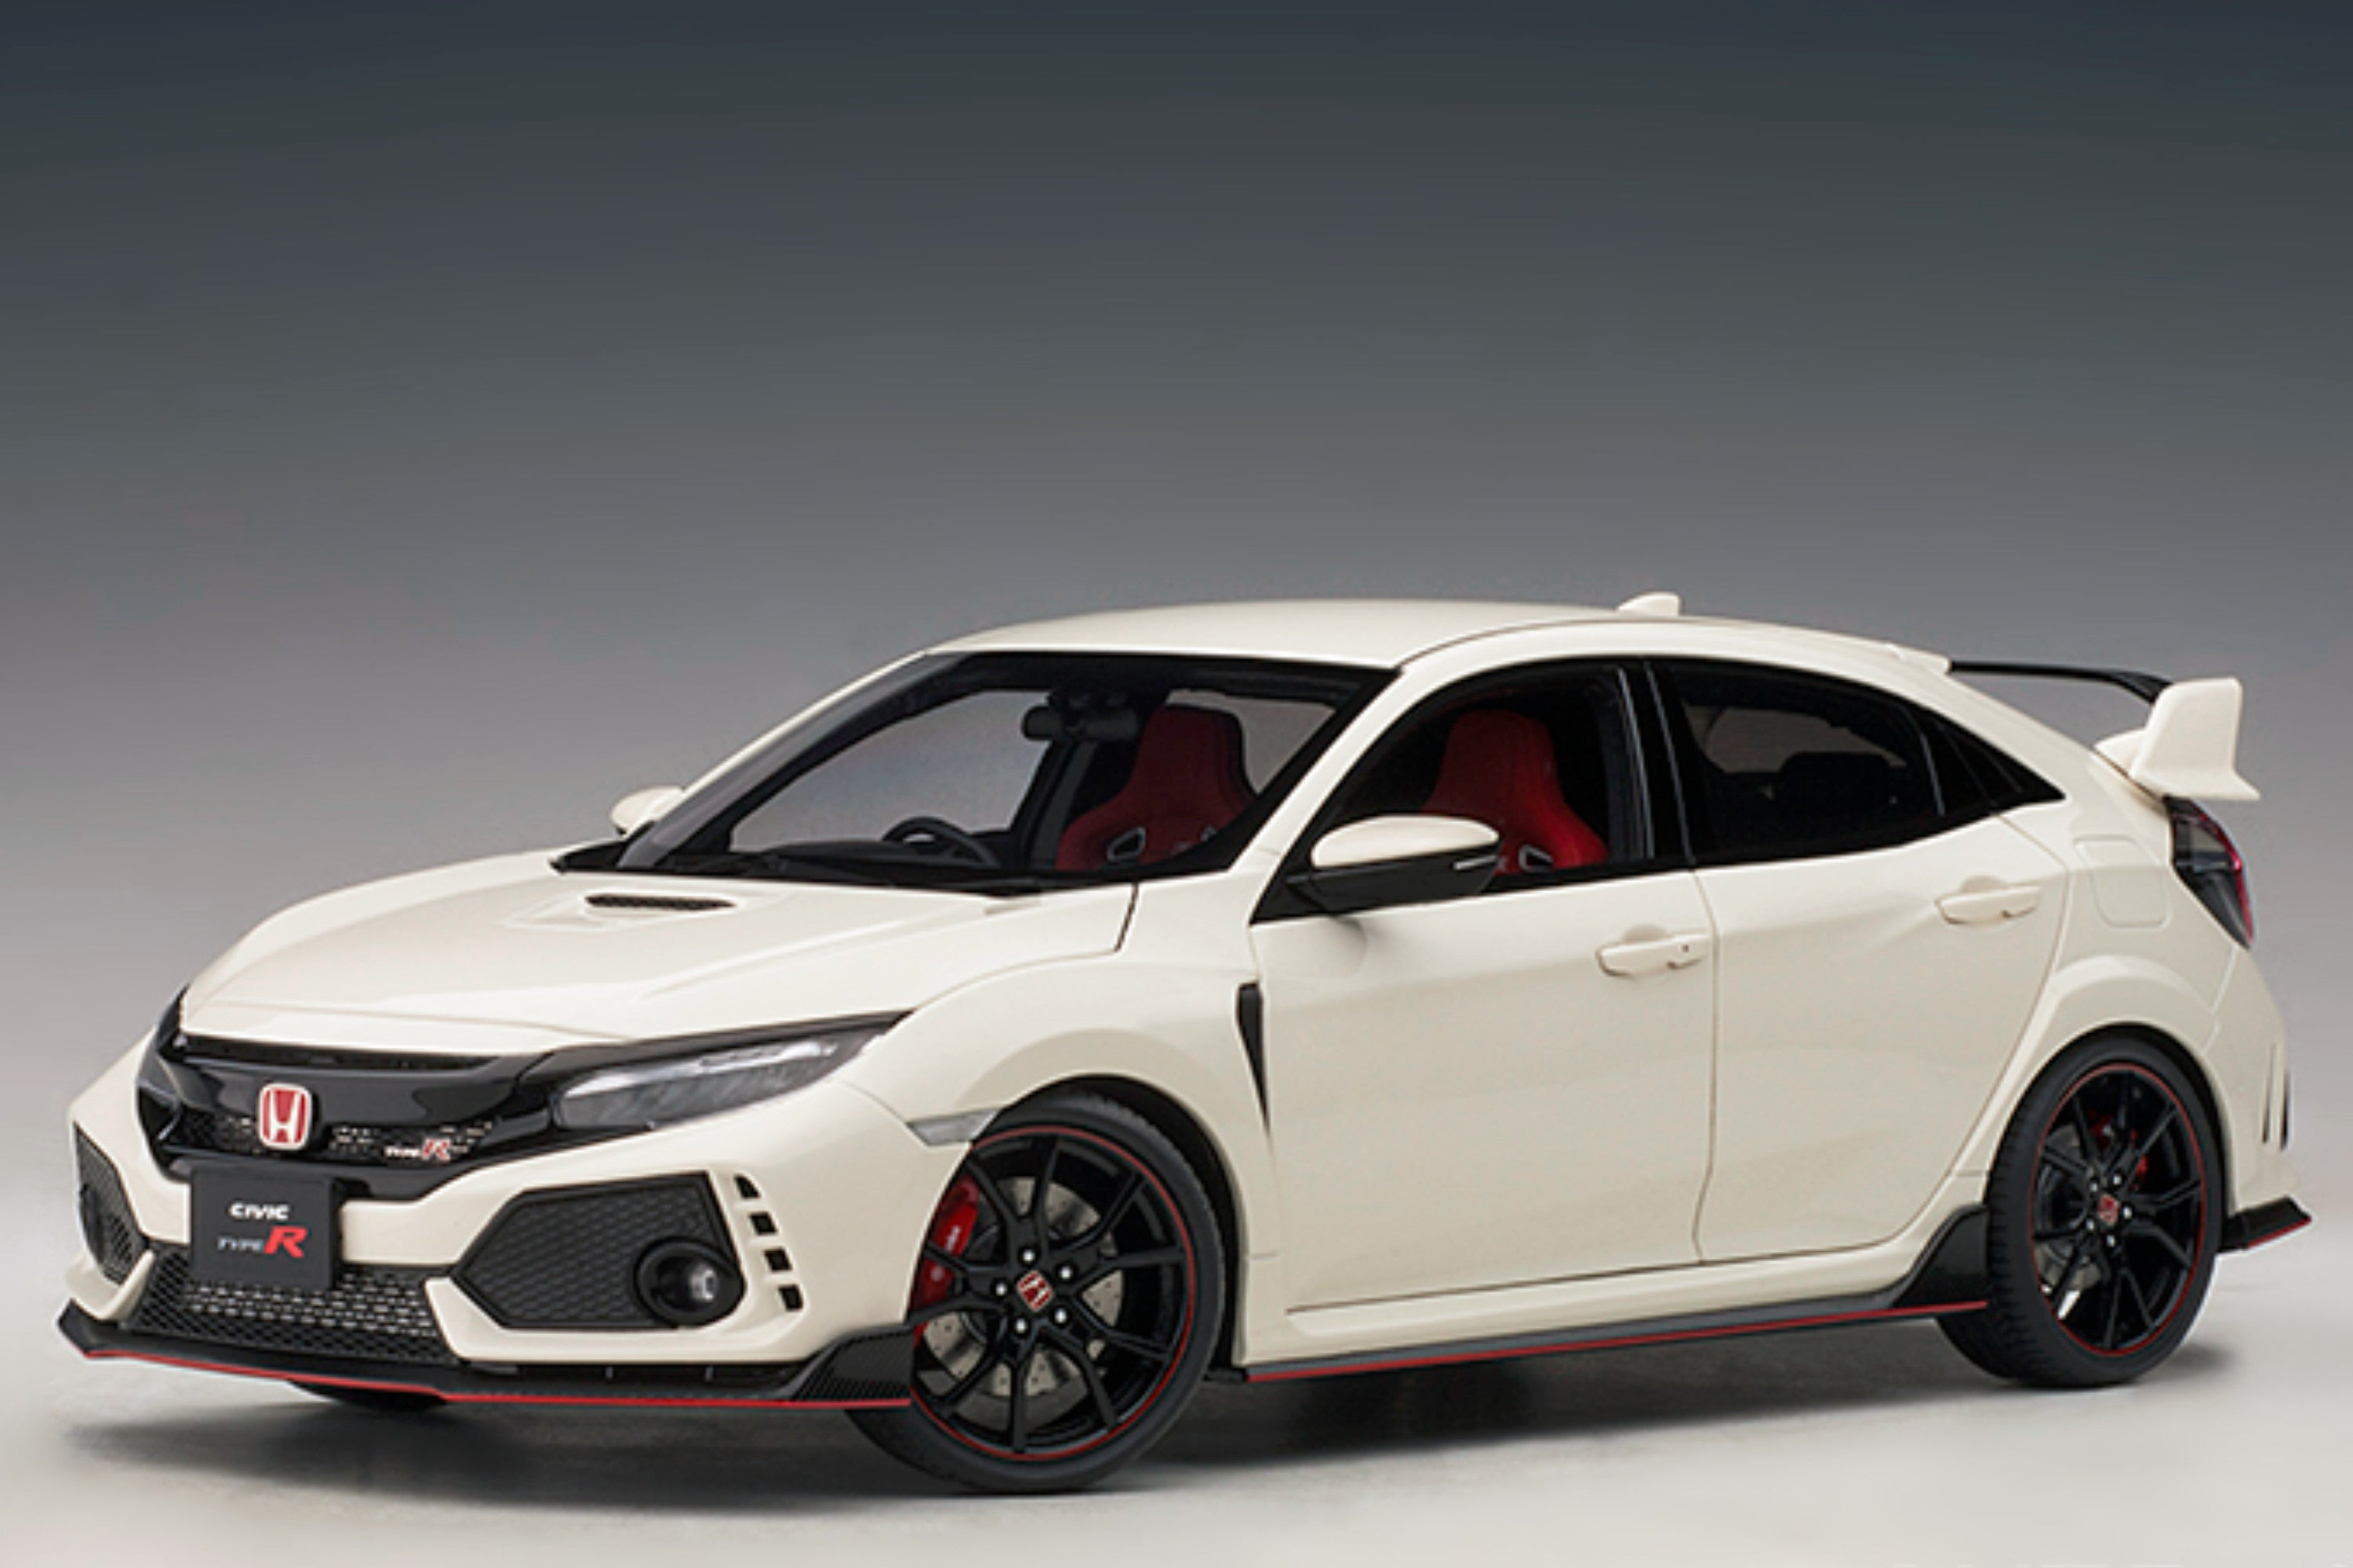 Honda Civic Type R (FK8) | 1:18 Scale Model Car by AUTOart | Front Quarter